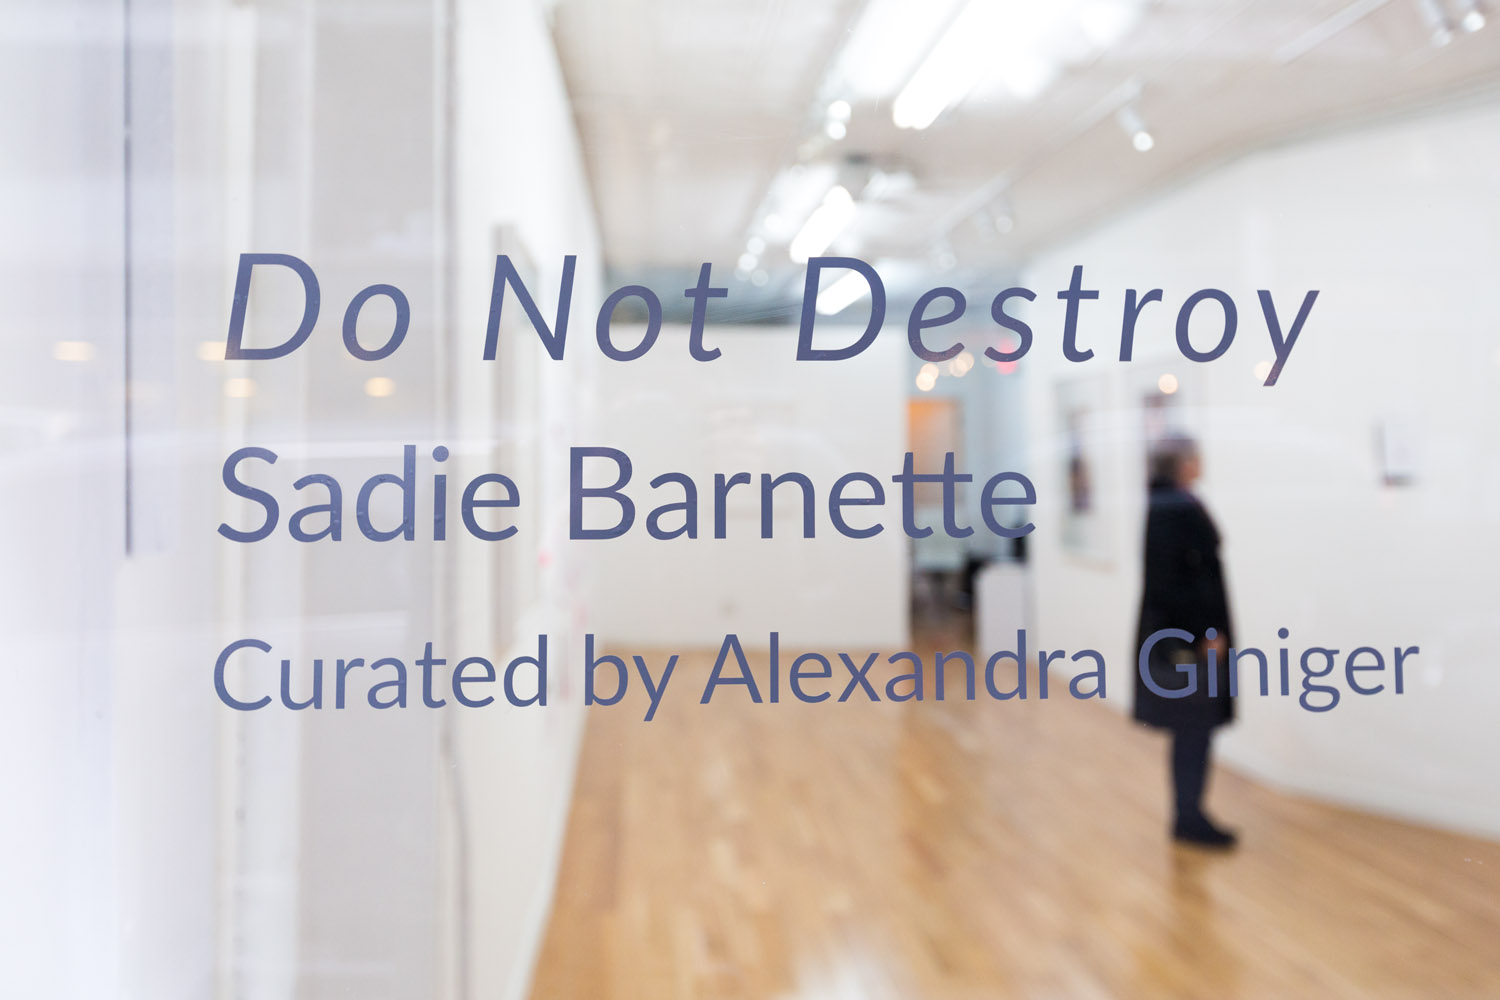 170118-Sadie_Barnette-Do_Not_Destroy_002.jpg